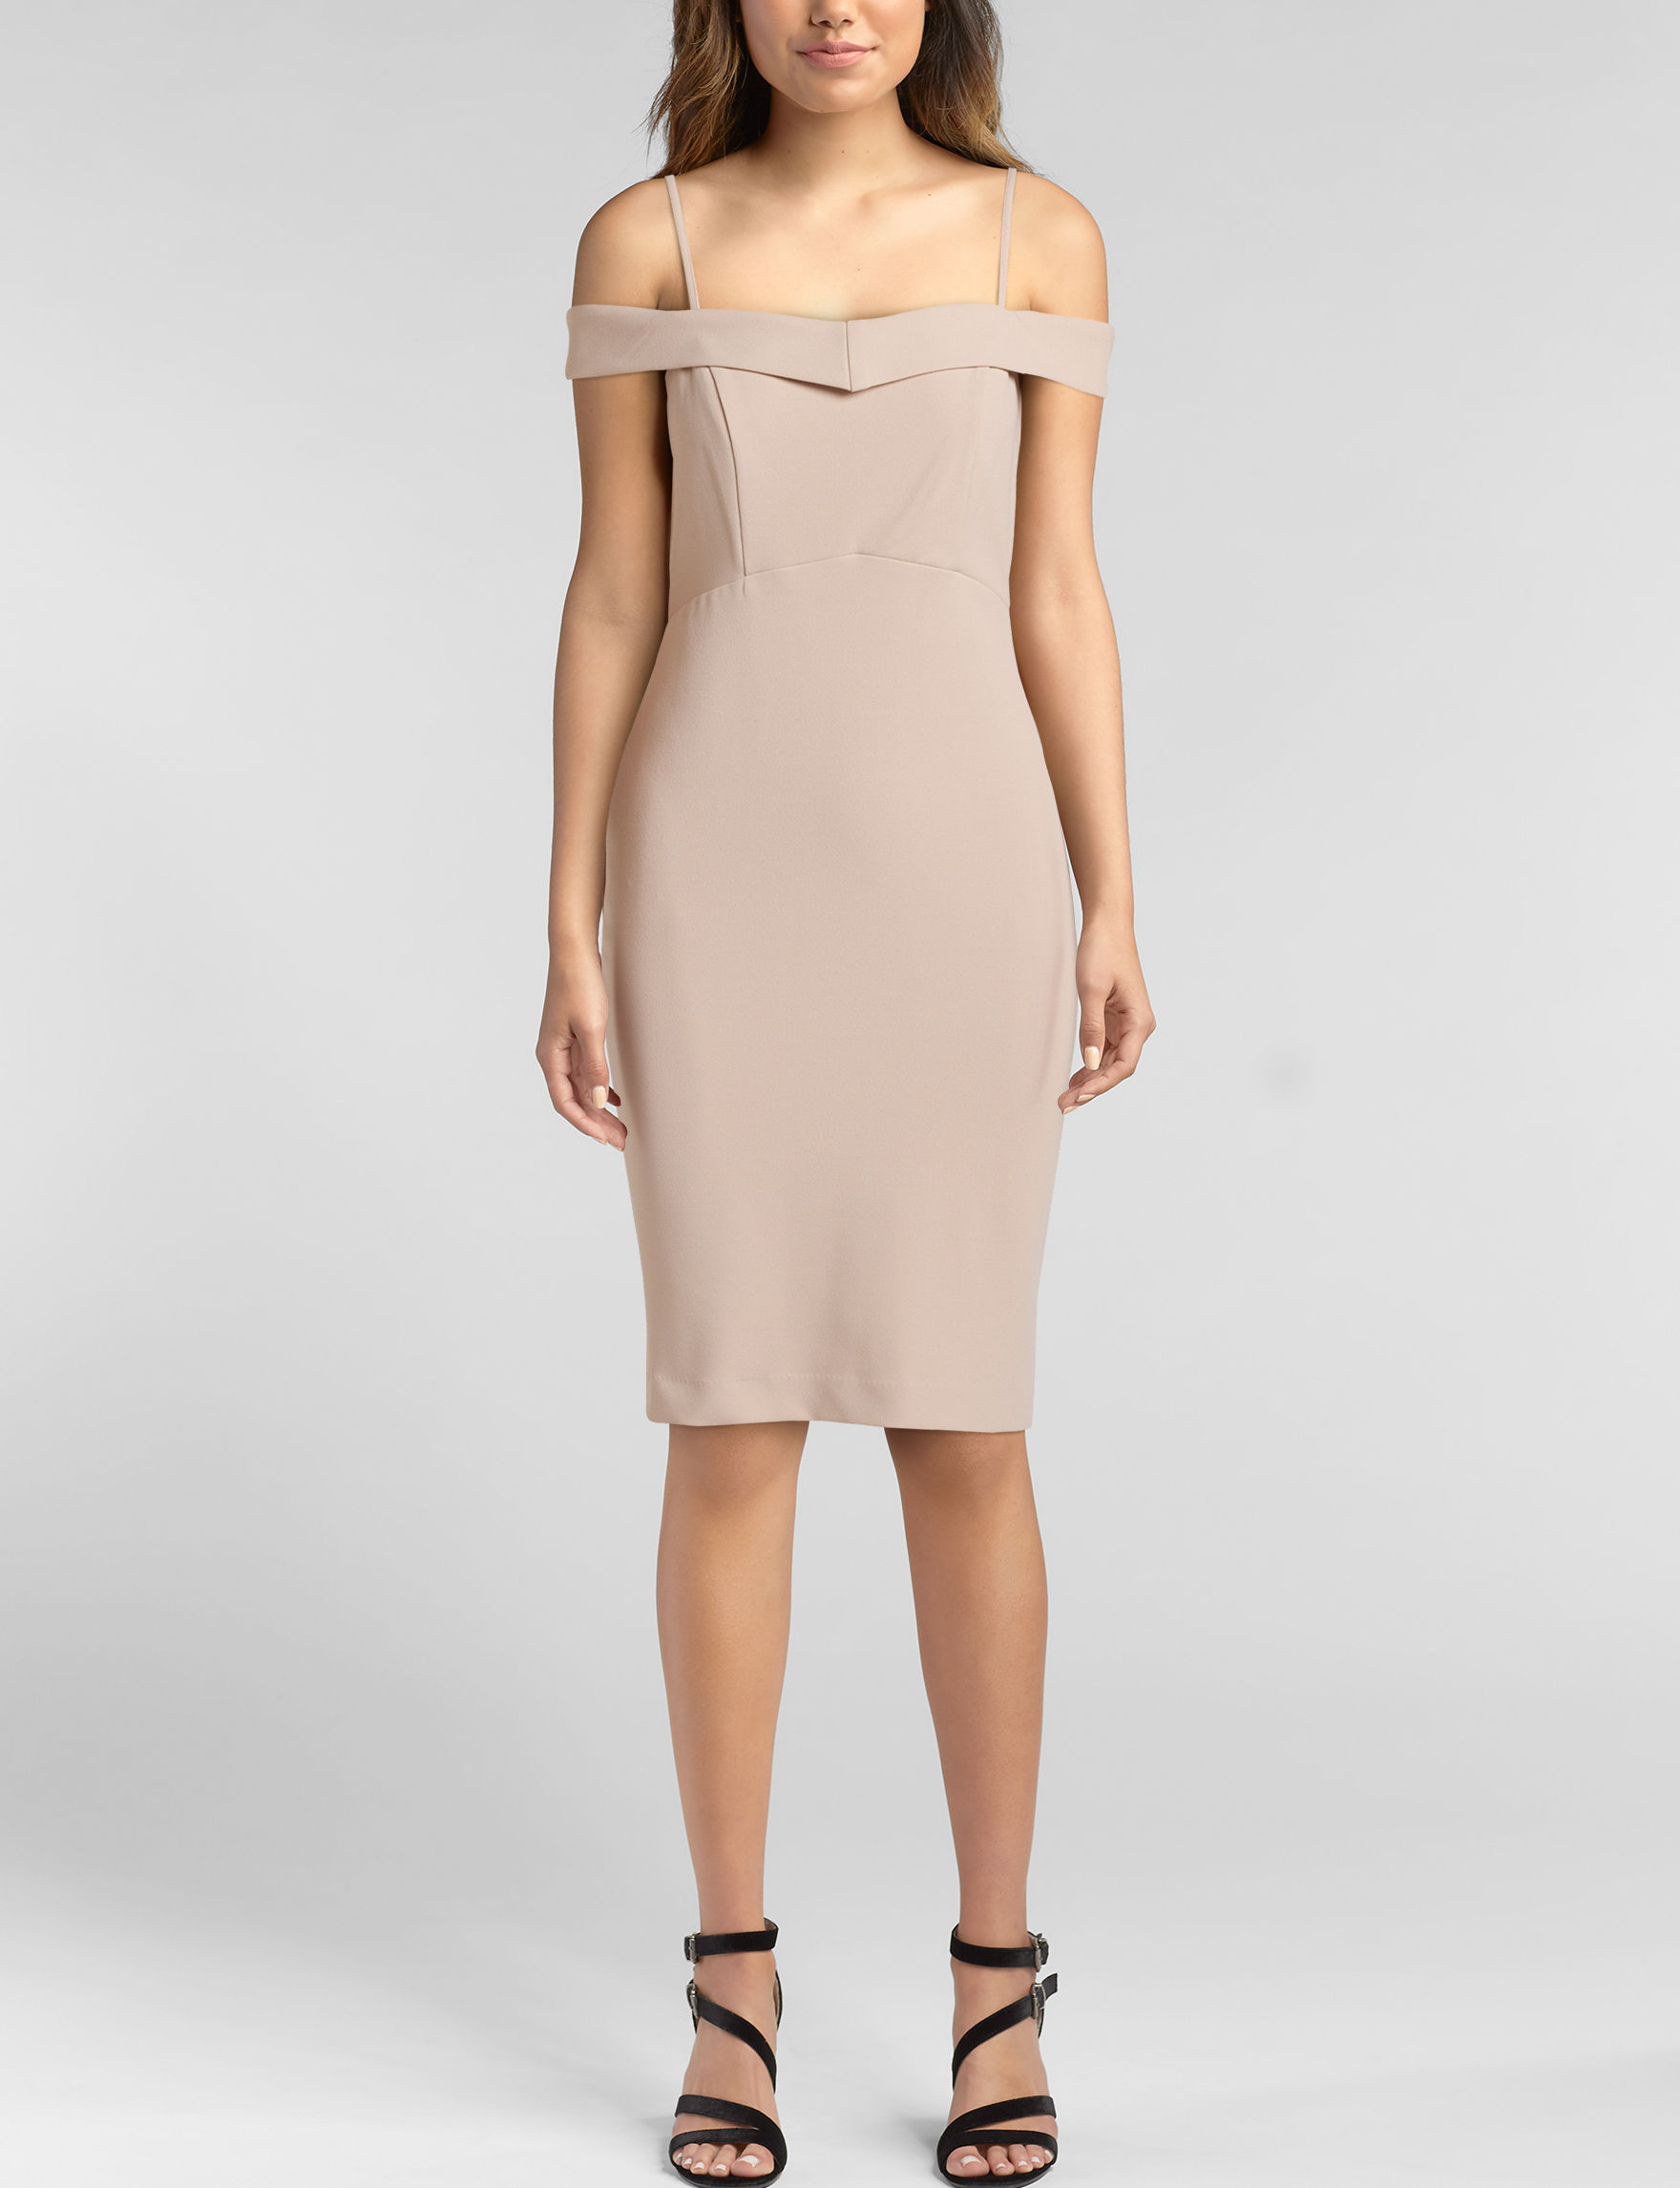 Bebe Nude Cocktail & Party Evening & Formal Fit & Flare Dresses